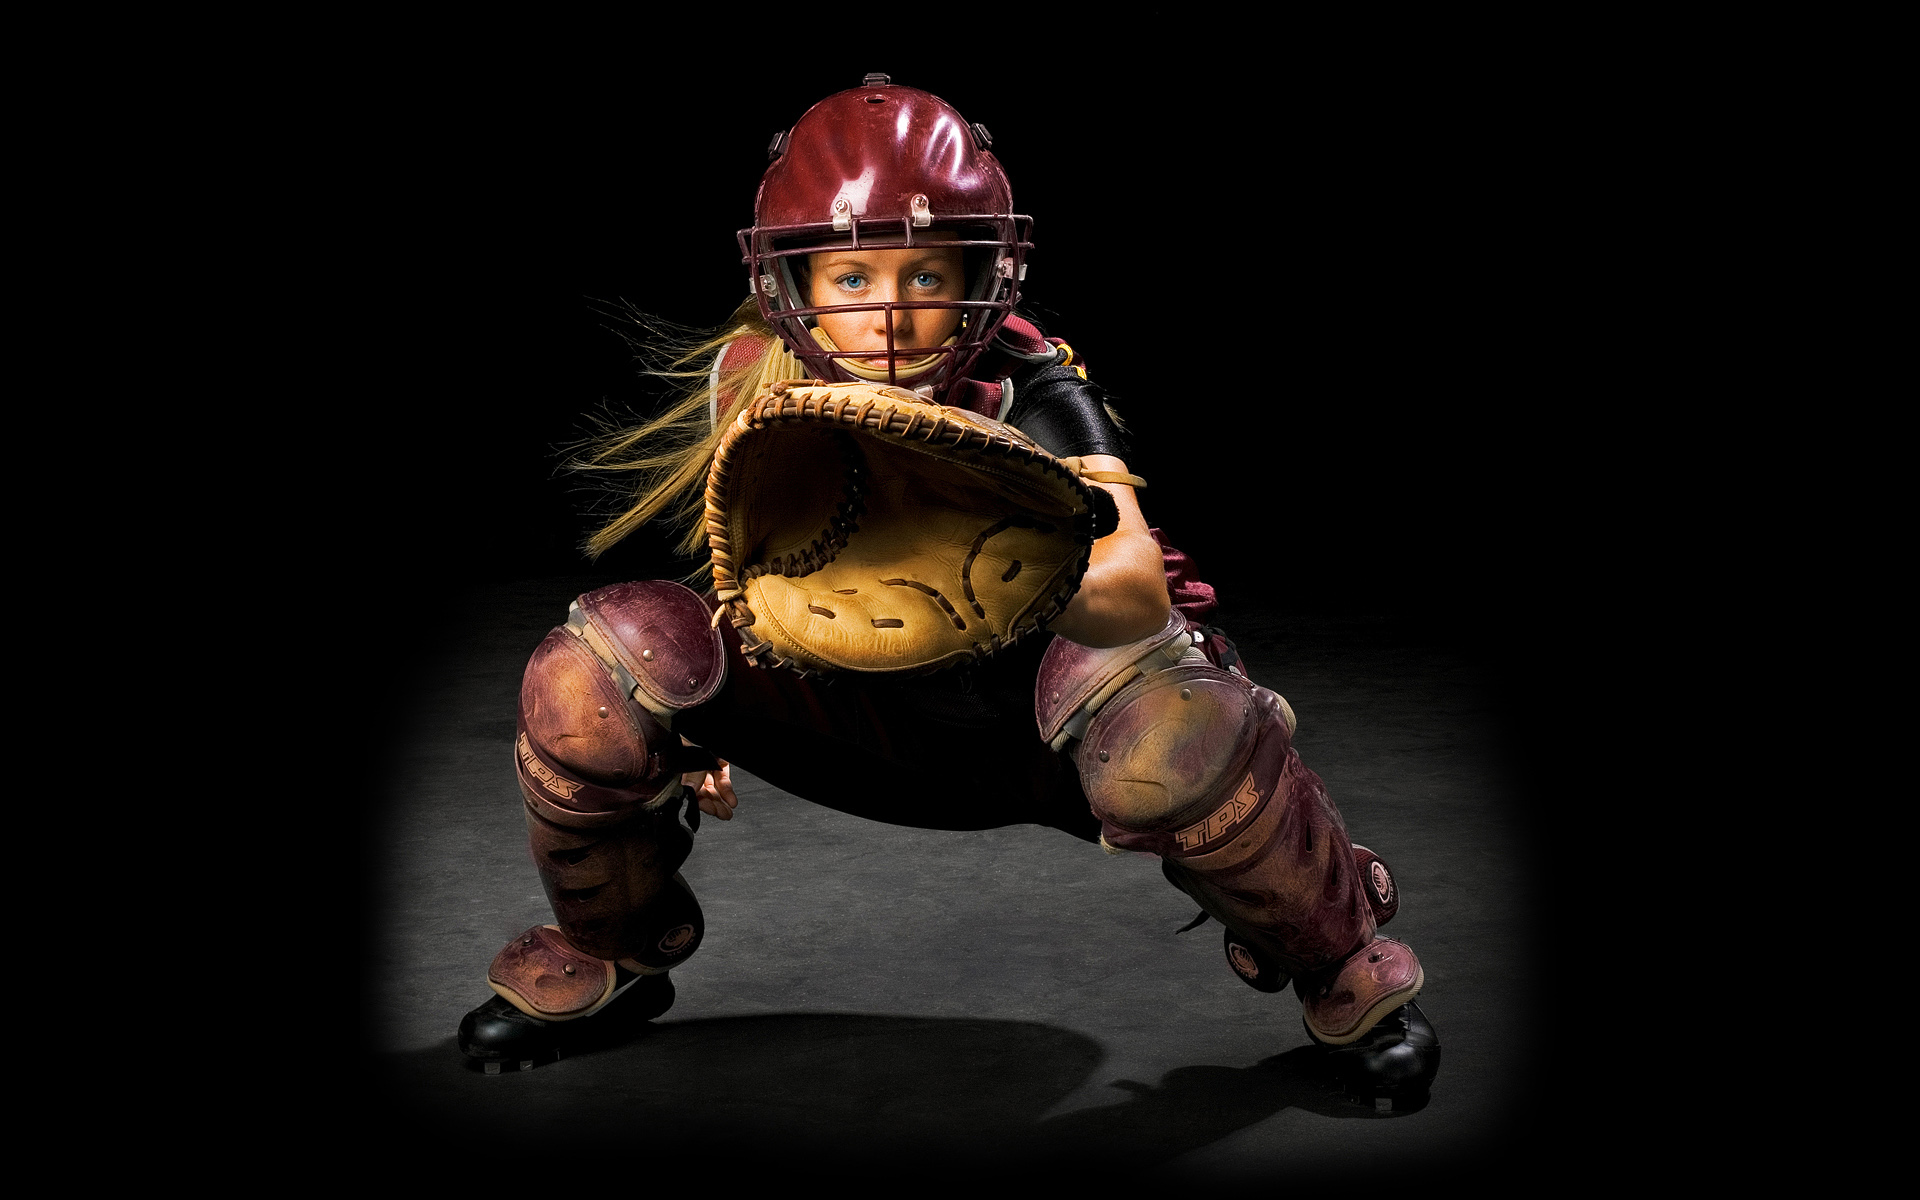 Softball Catcher by renowned photographer Blair Bunting